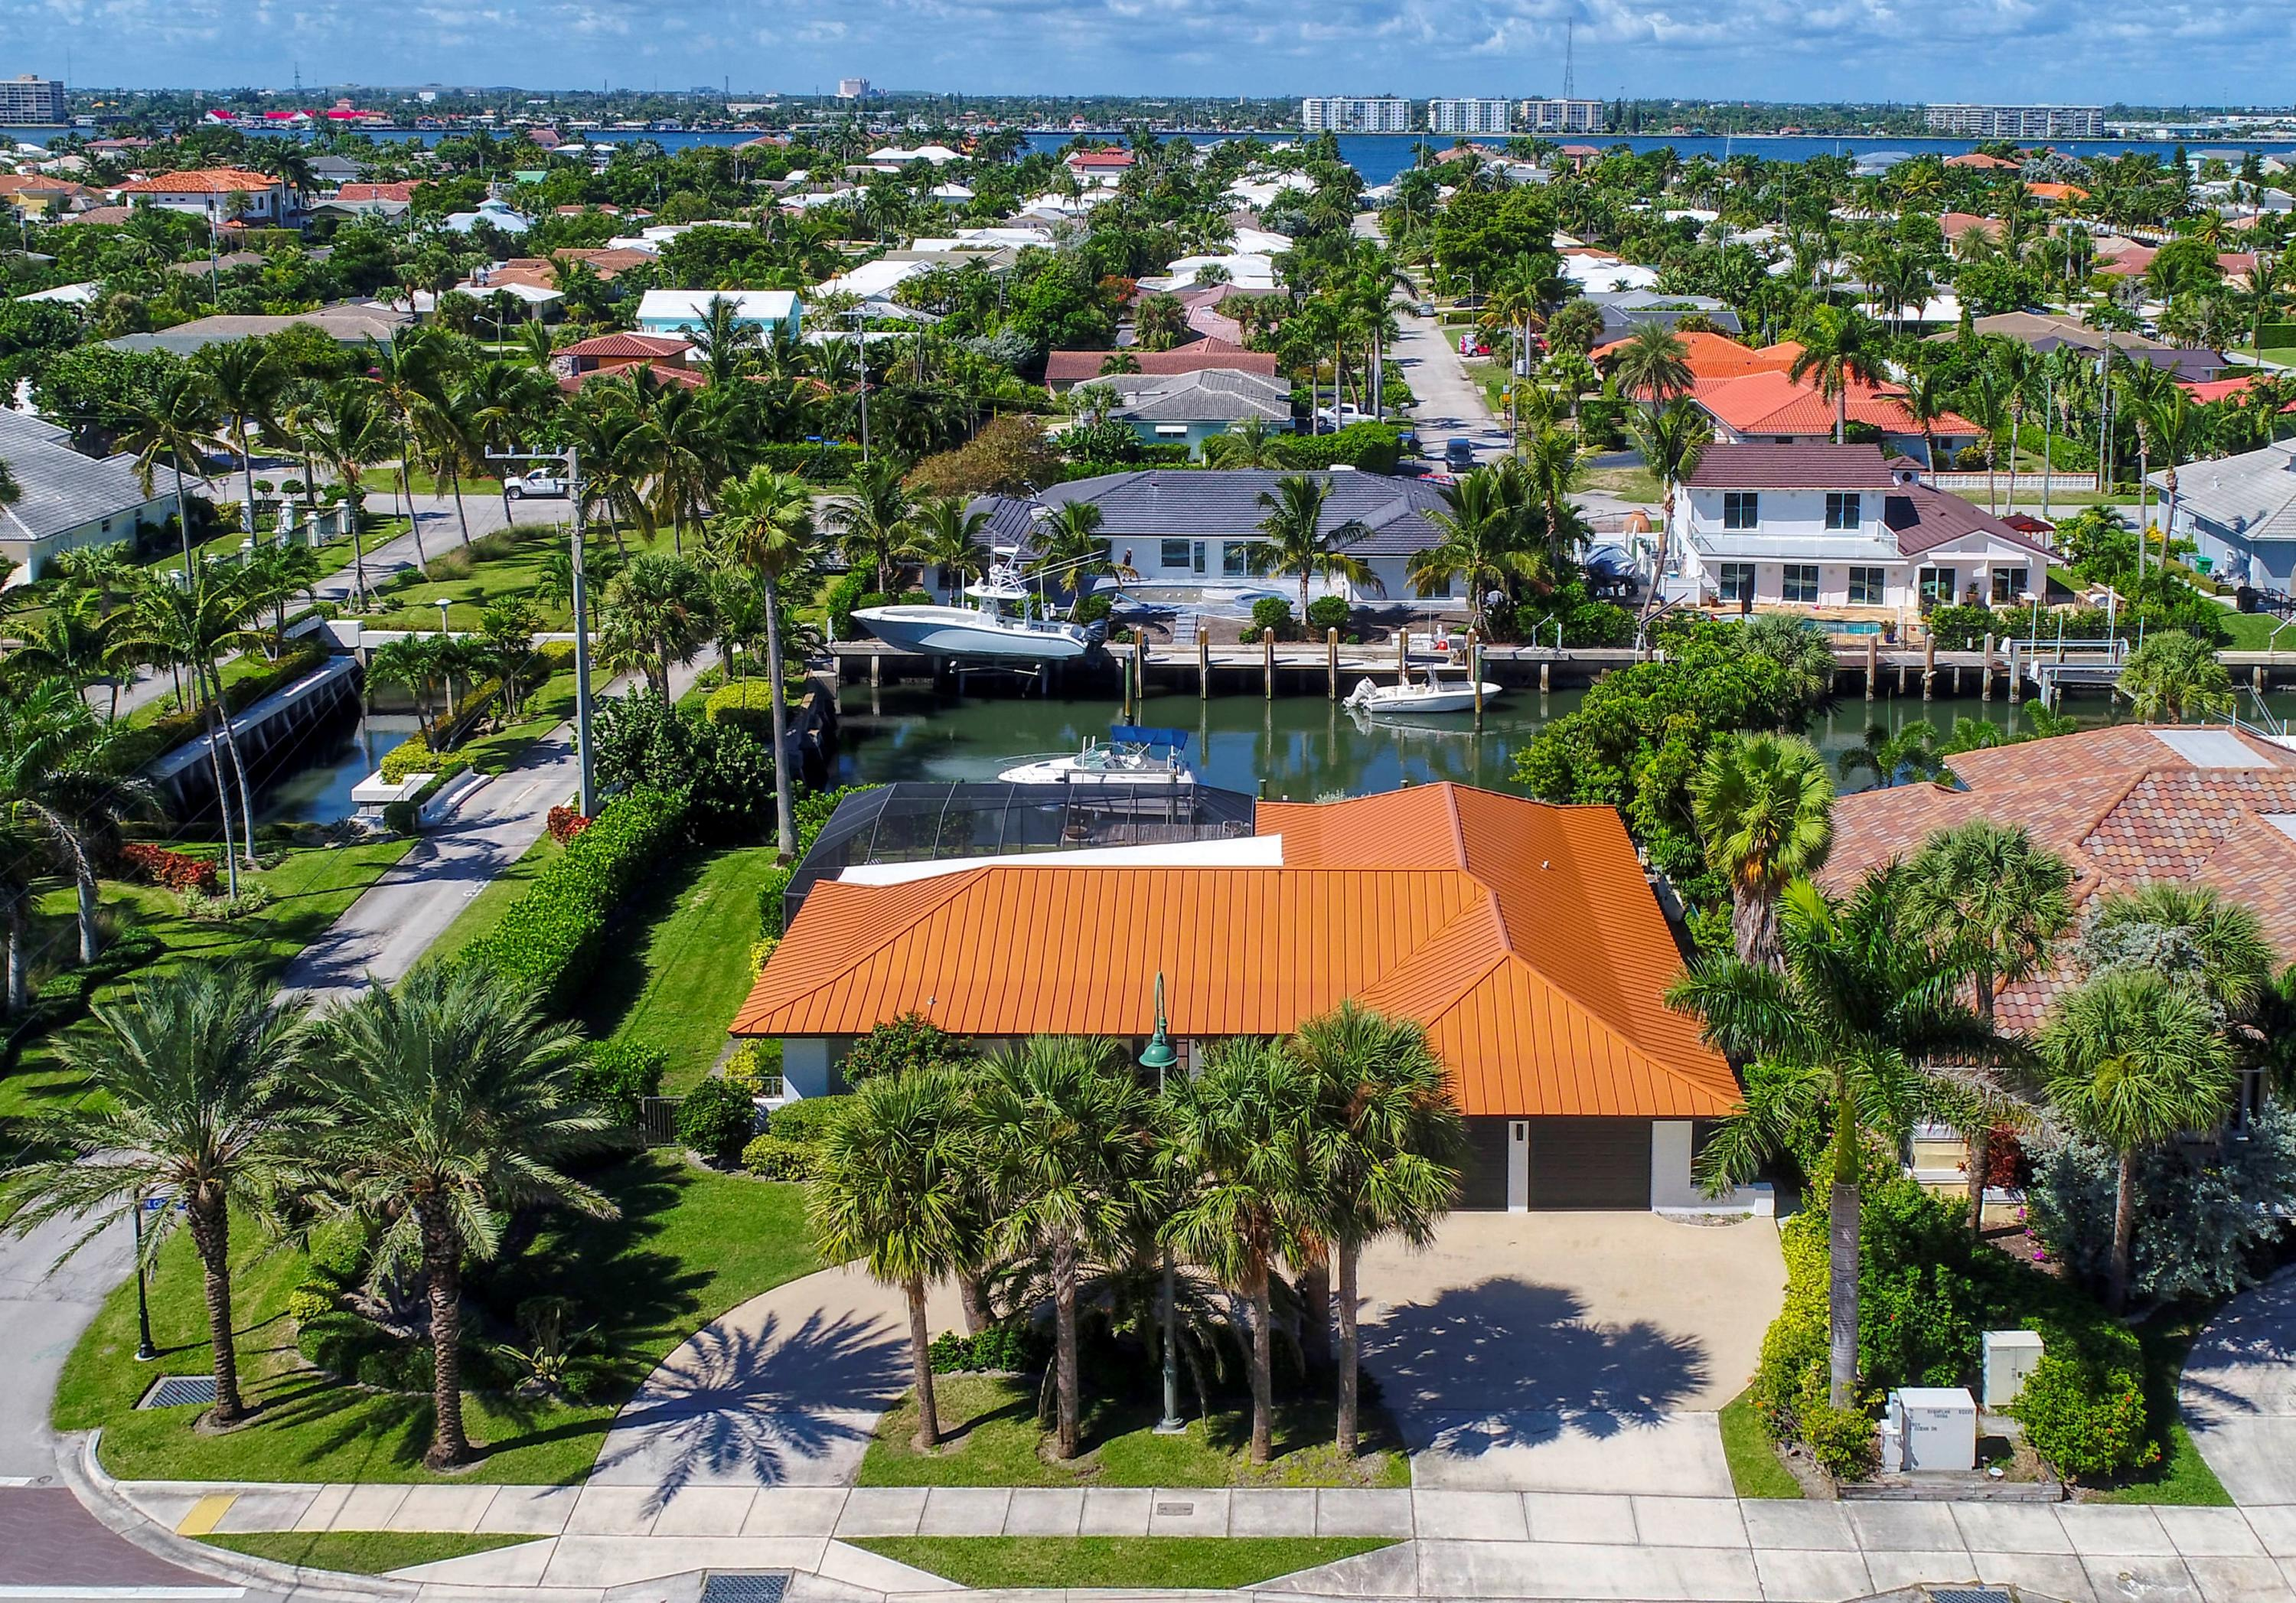 New Home for sale at 3901 Ocean Drive in Singer Island